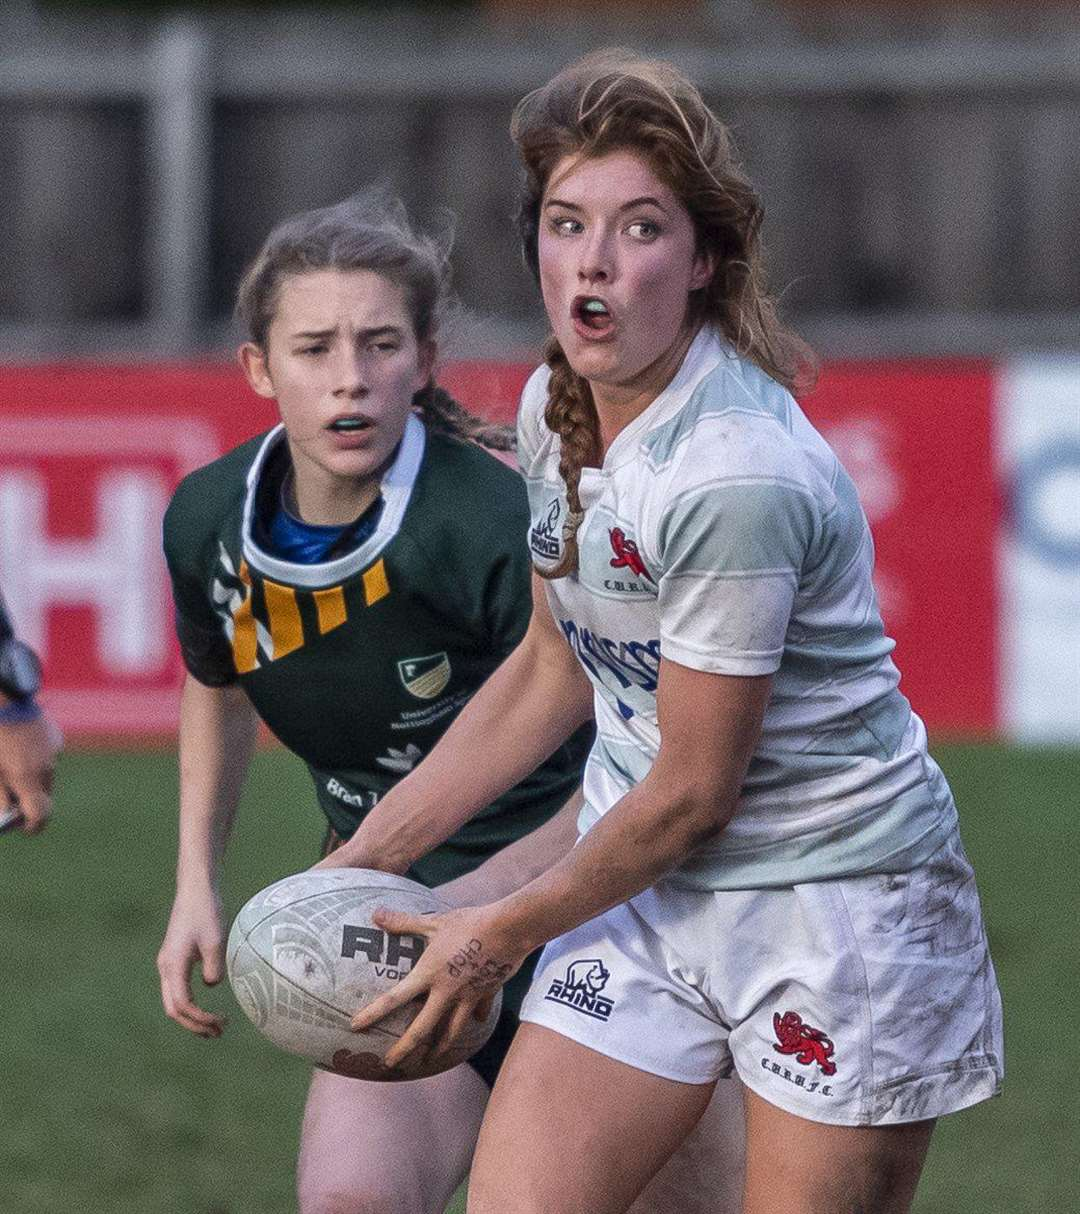 Cambridge University women v Nottingham, Cambridge University Rugby Union Football Club, Fiona Shuttleworth . Picture: Keith Heppell (5693149)